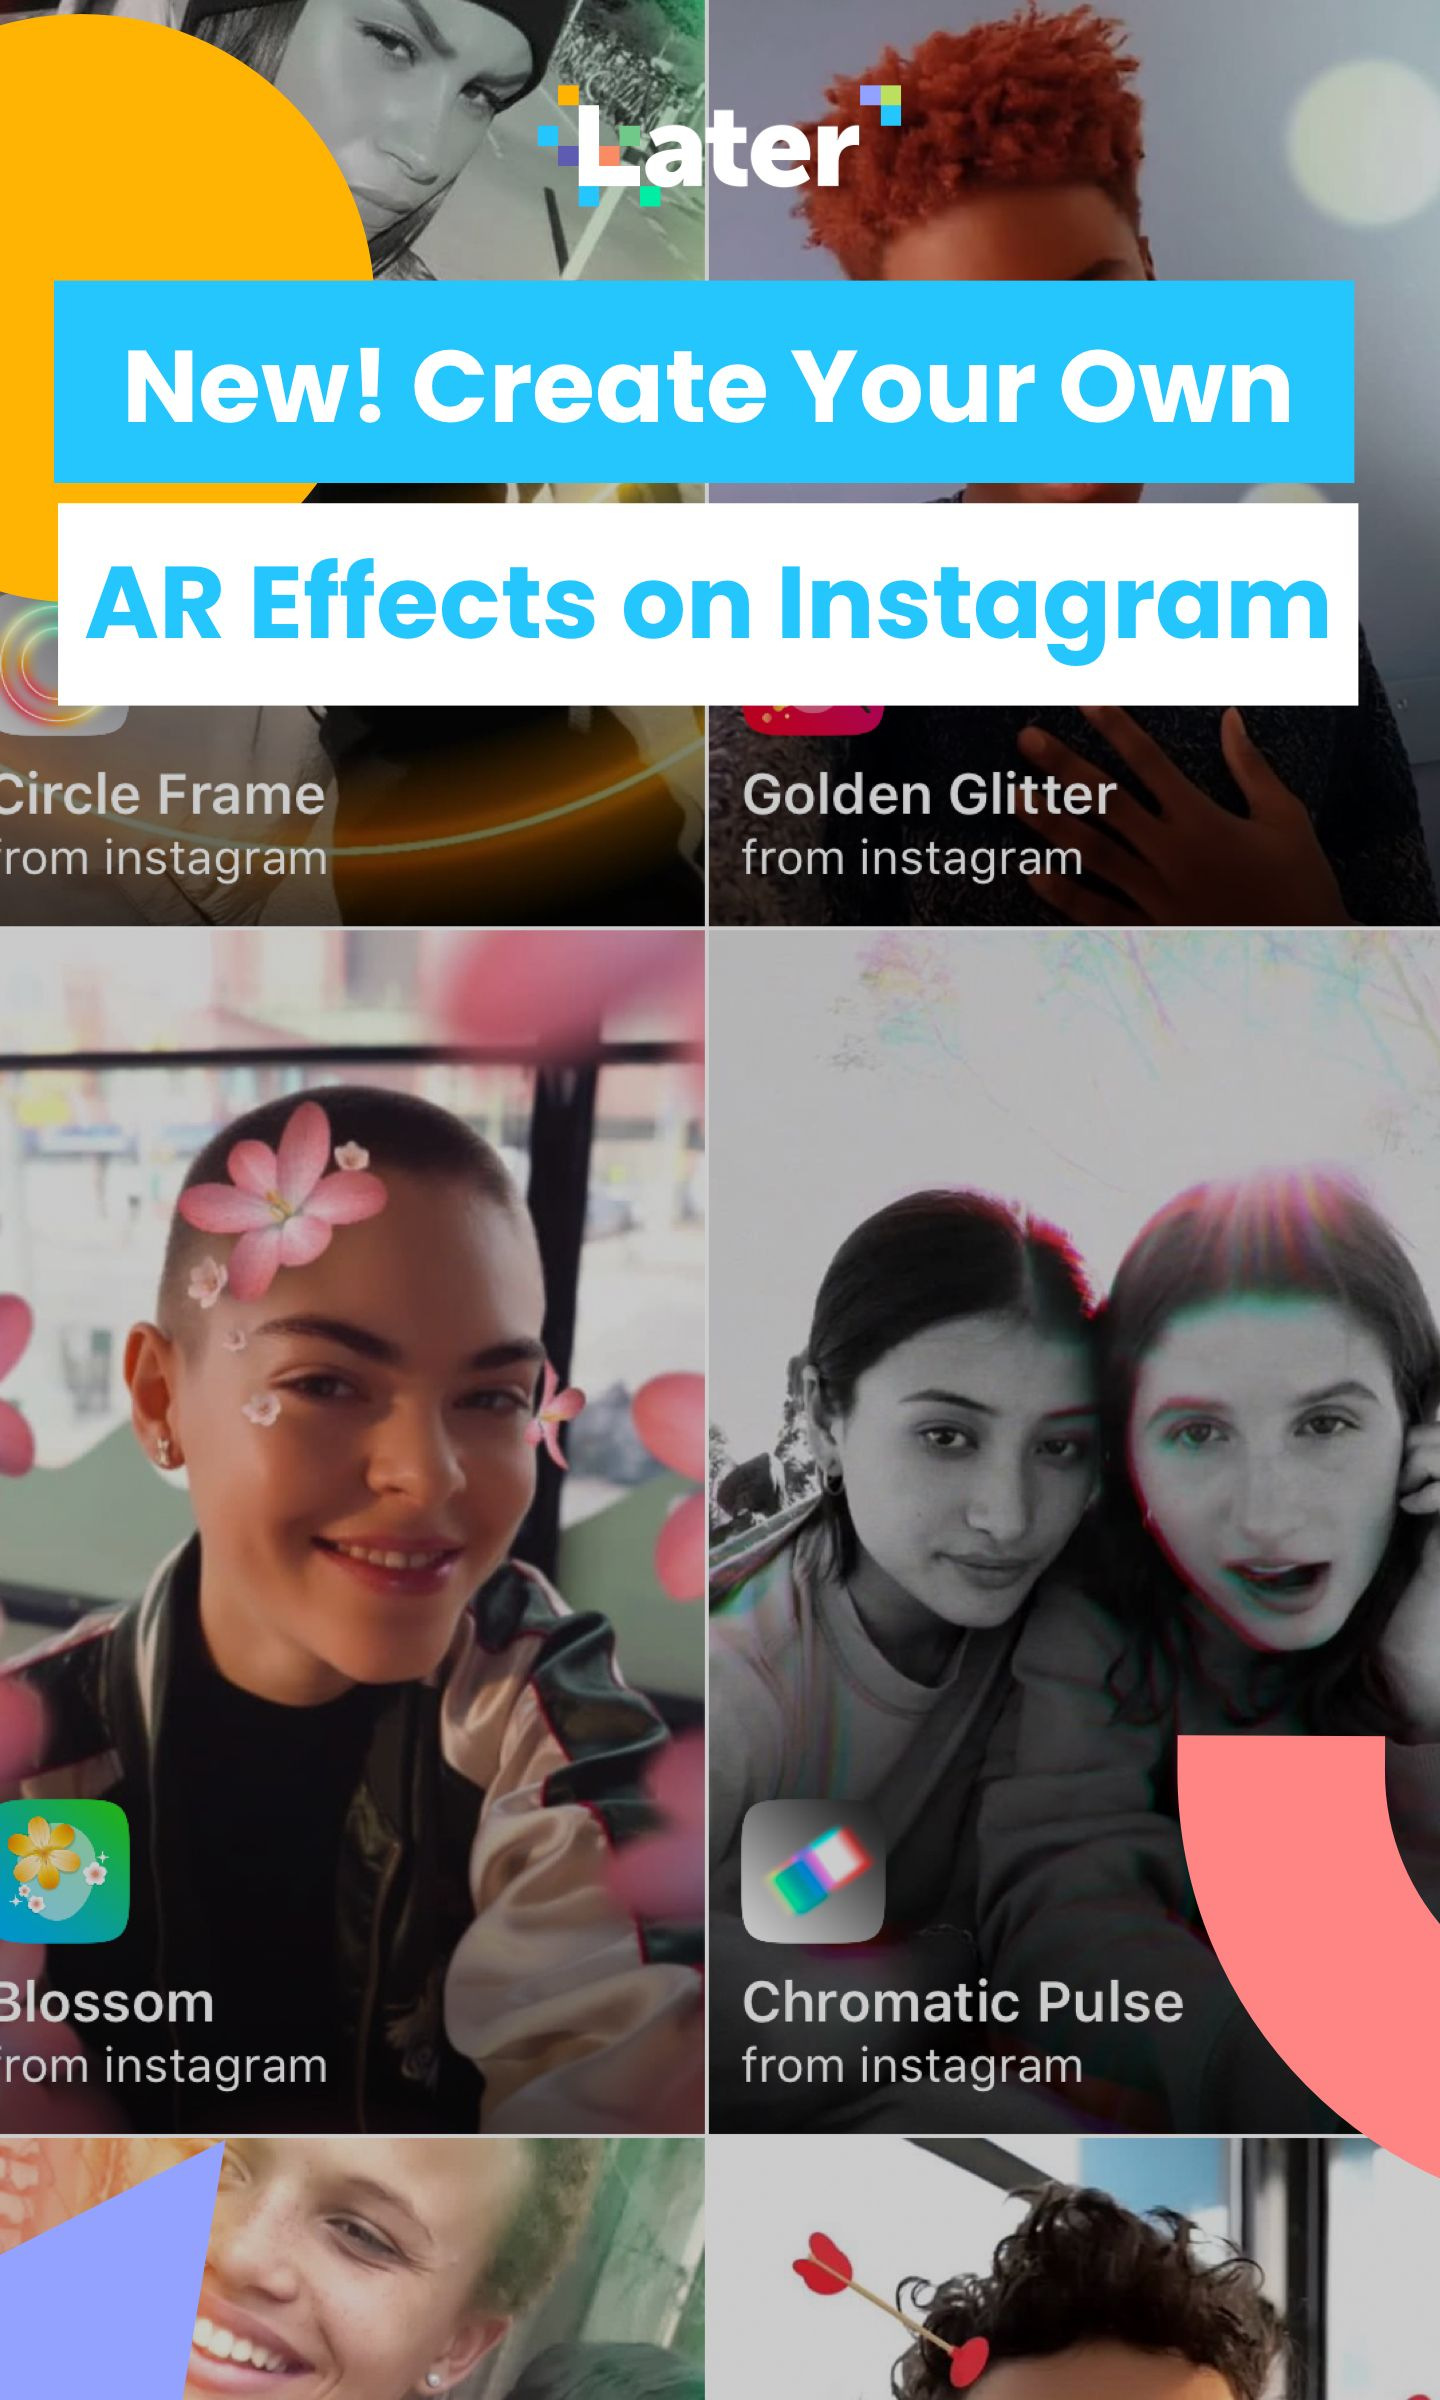 You Can Now Create Your Own AR Effects on Instagram